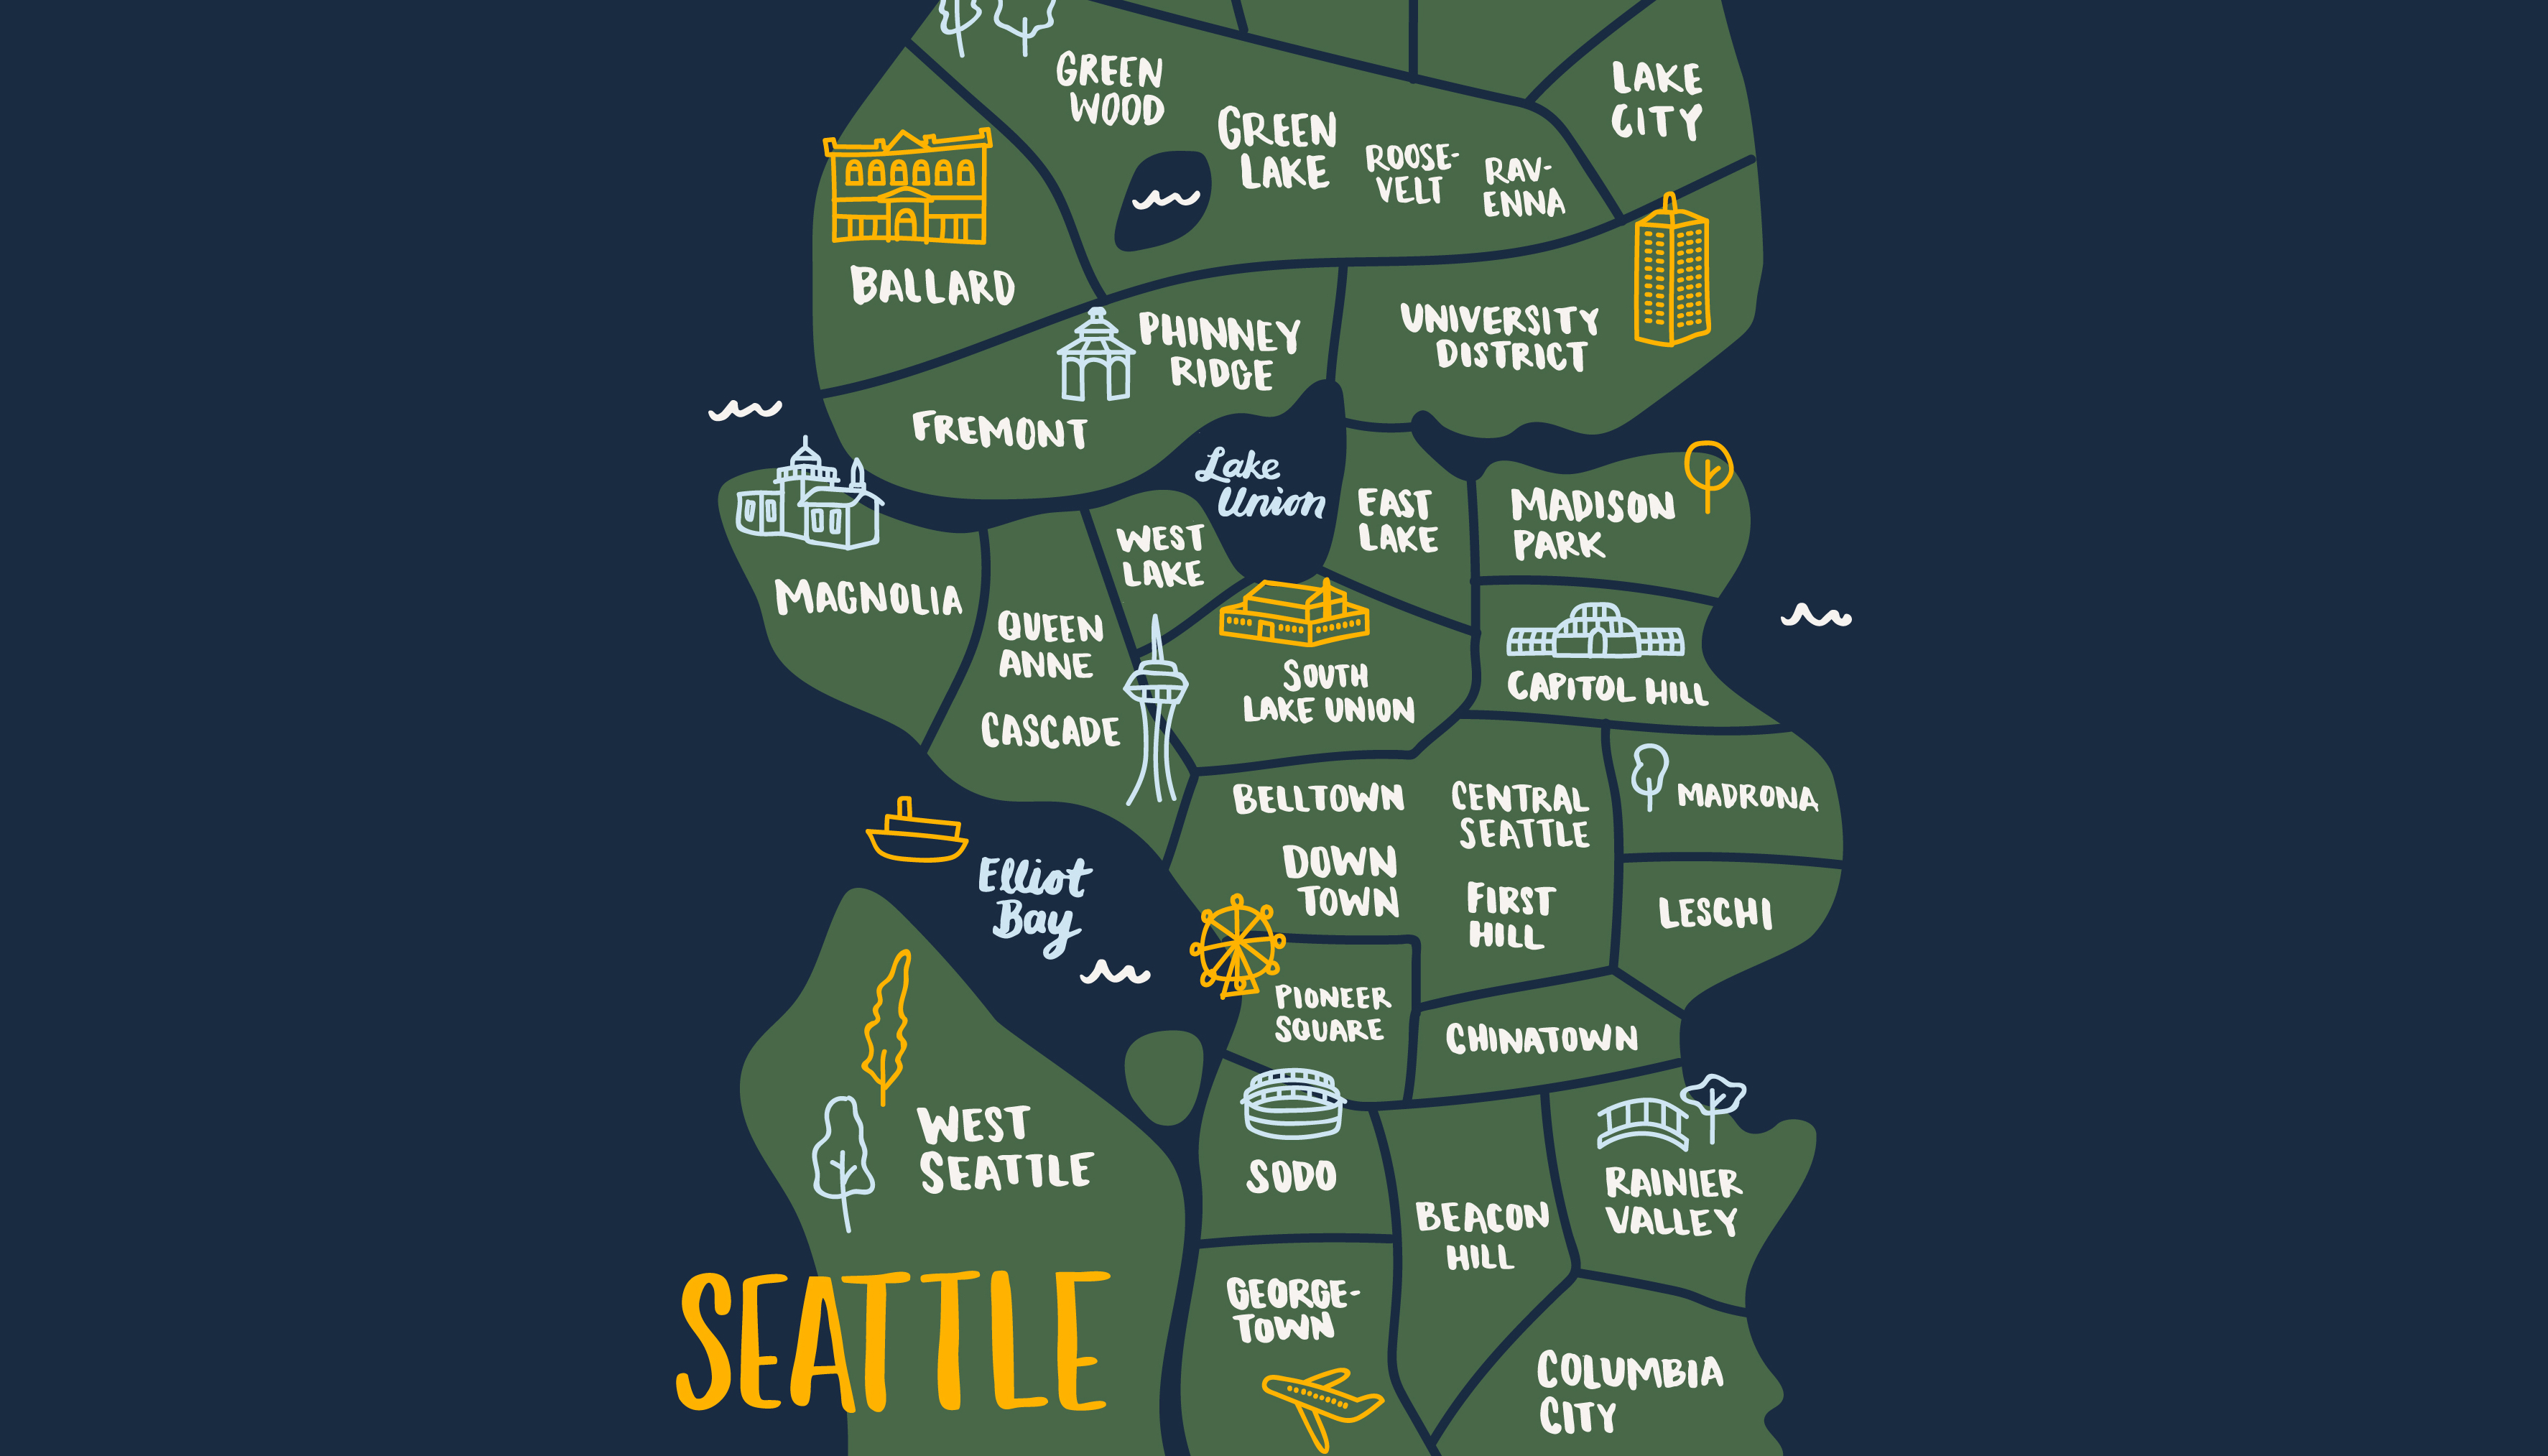 A Guide to the Neighborhoods of Seattle